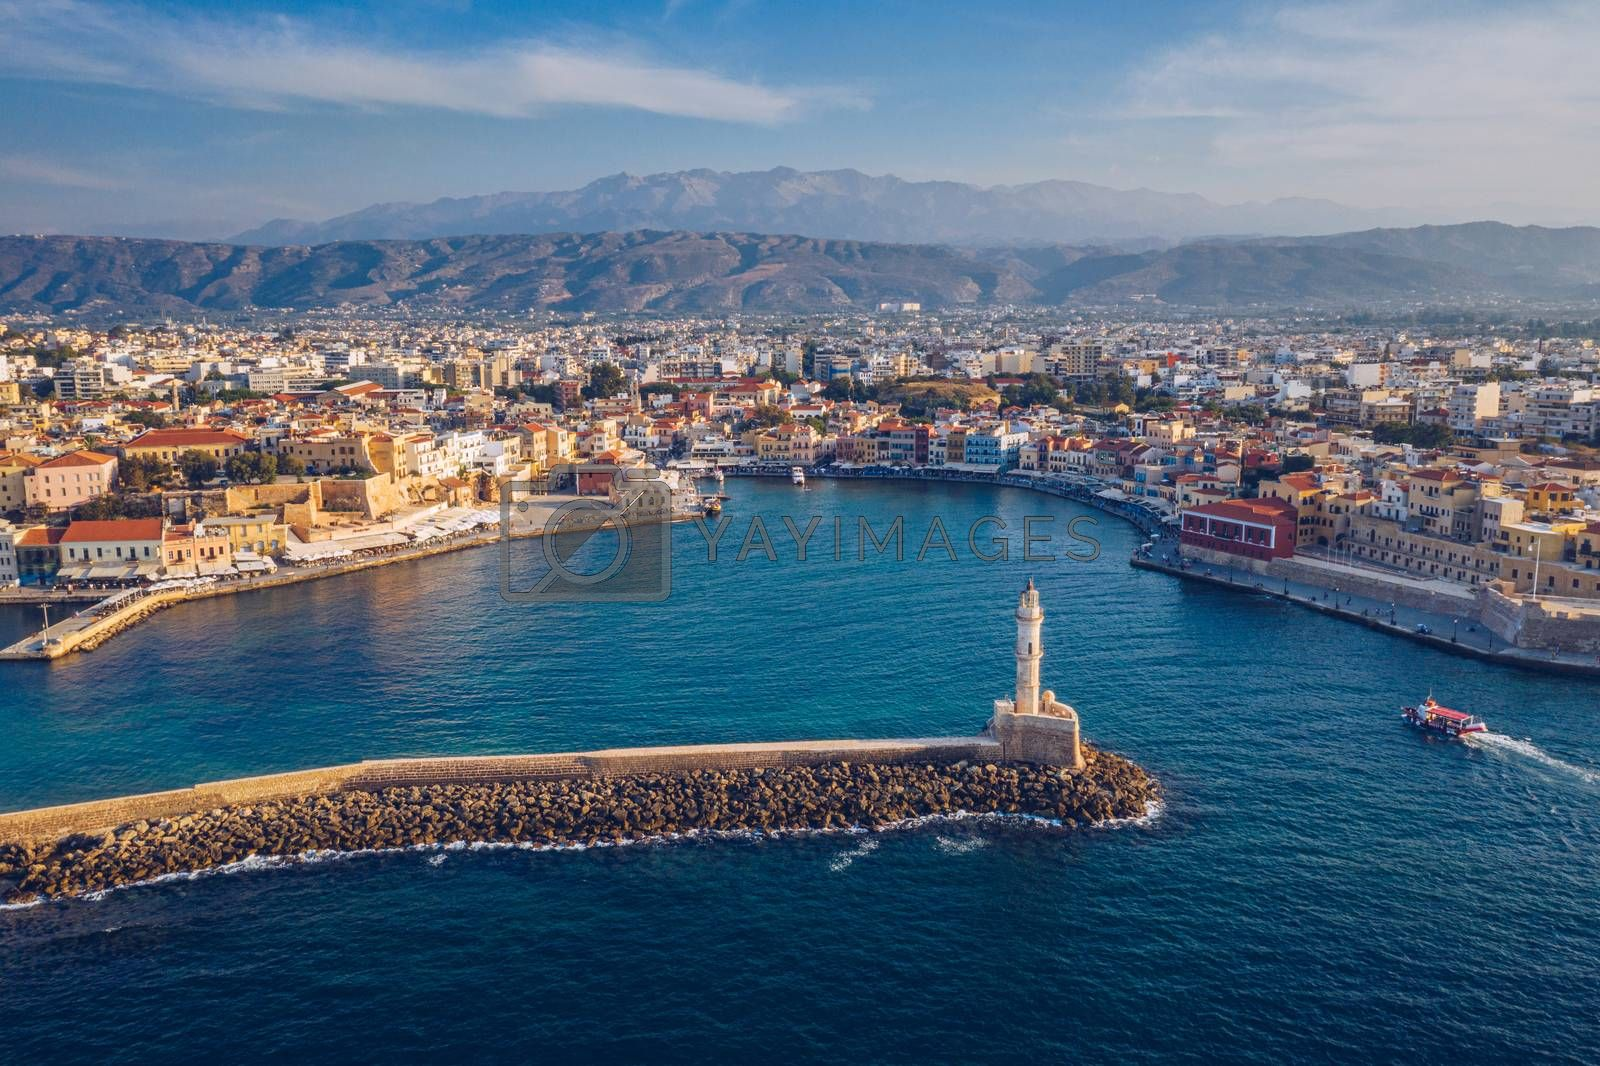 Picturesque old port of Chania. Landmarks of Crete island. Greece. Aerial view of the beautiful city of Chania with it's old harbor and the famous lighthouse, Crete, Greece.